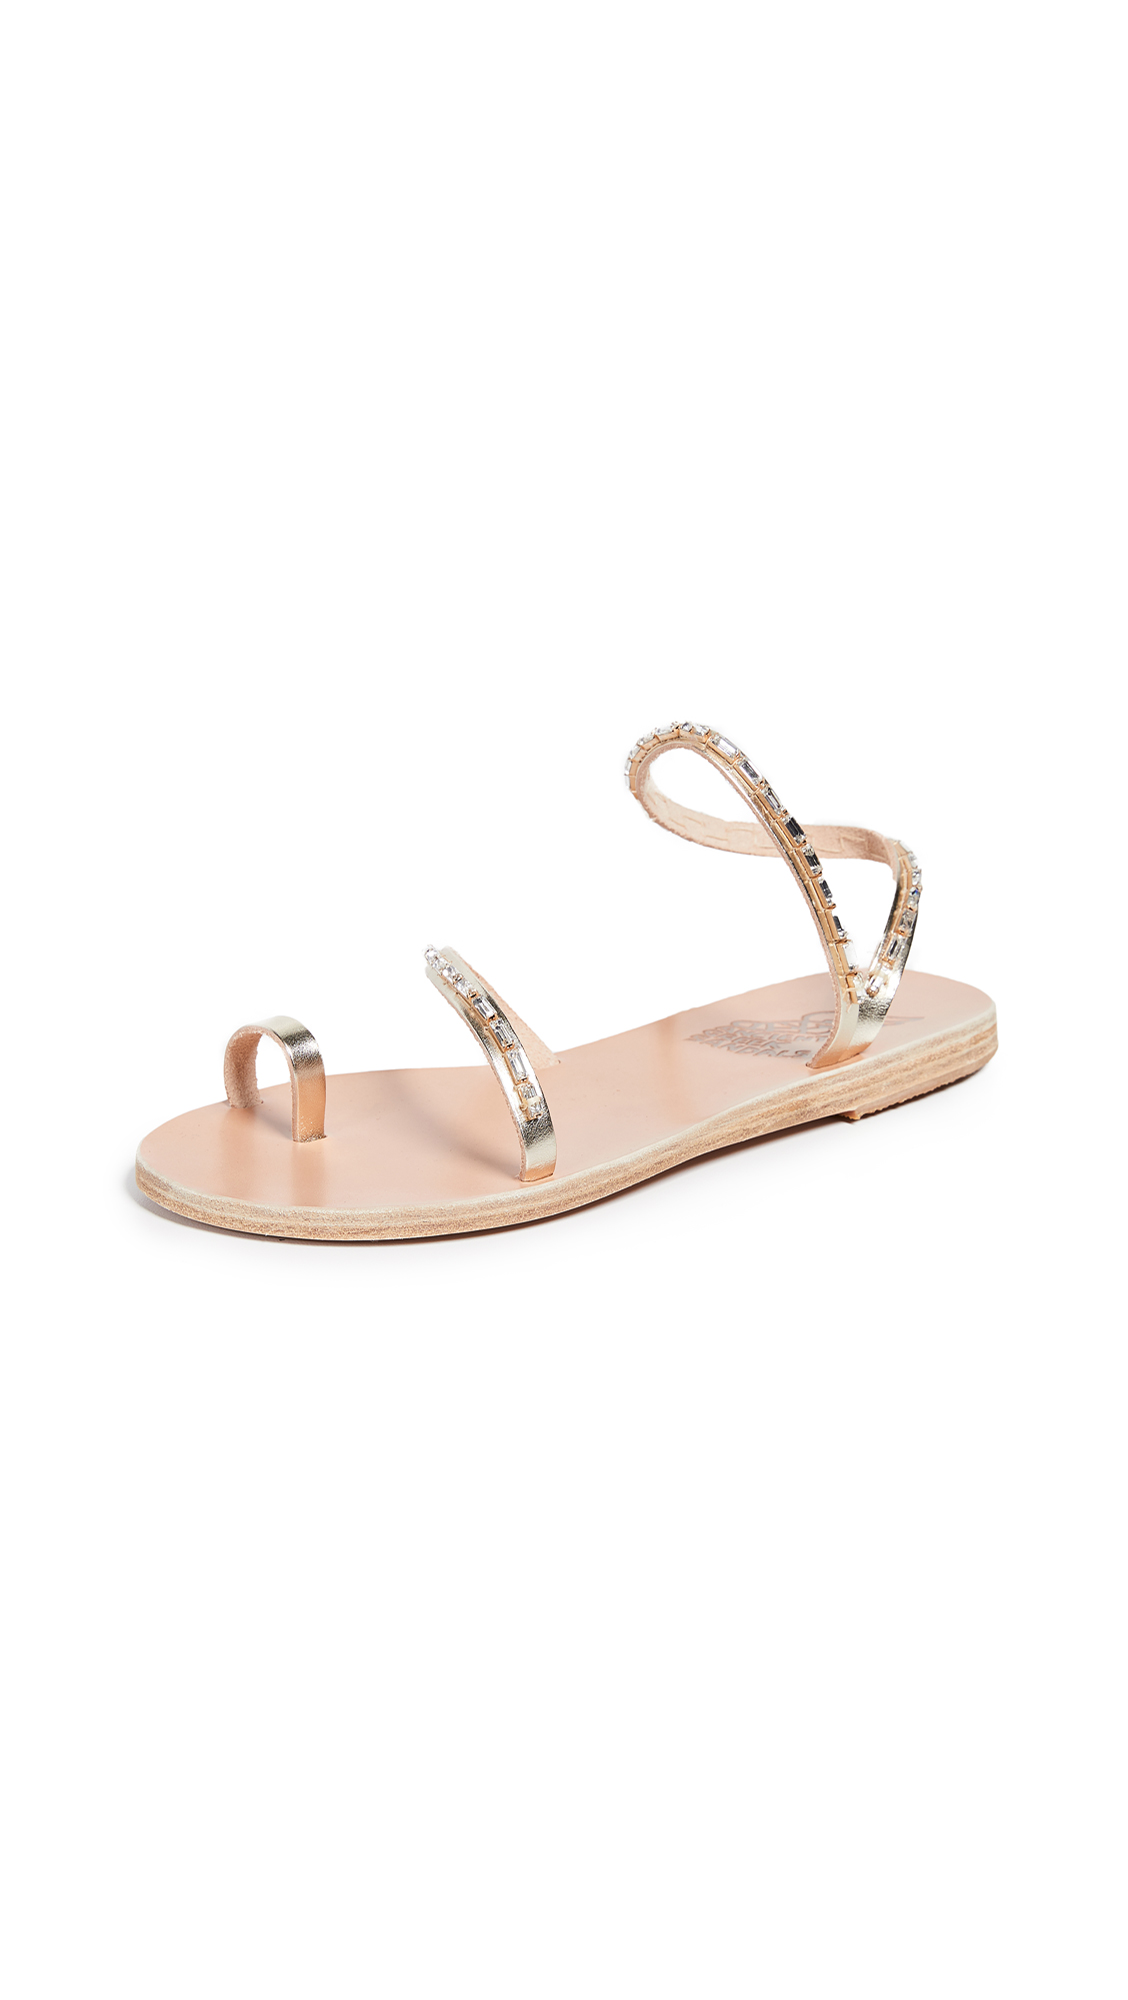 Ancient Greek Sandals Apli Eleftheria Diamonds Sandals - Platinum